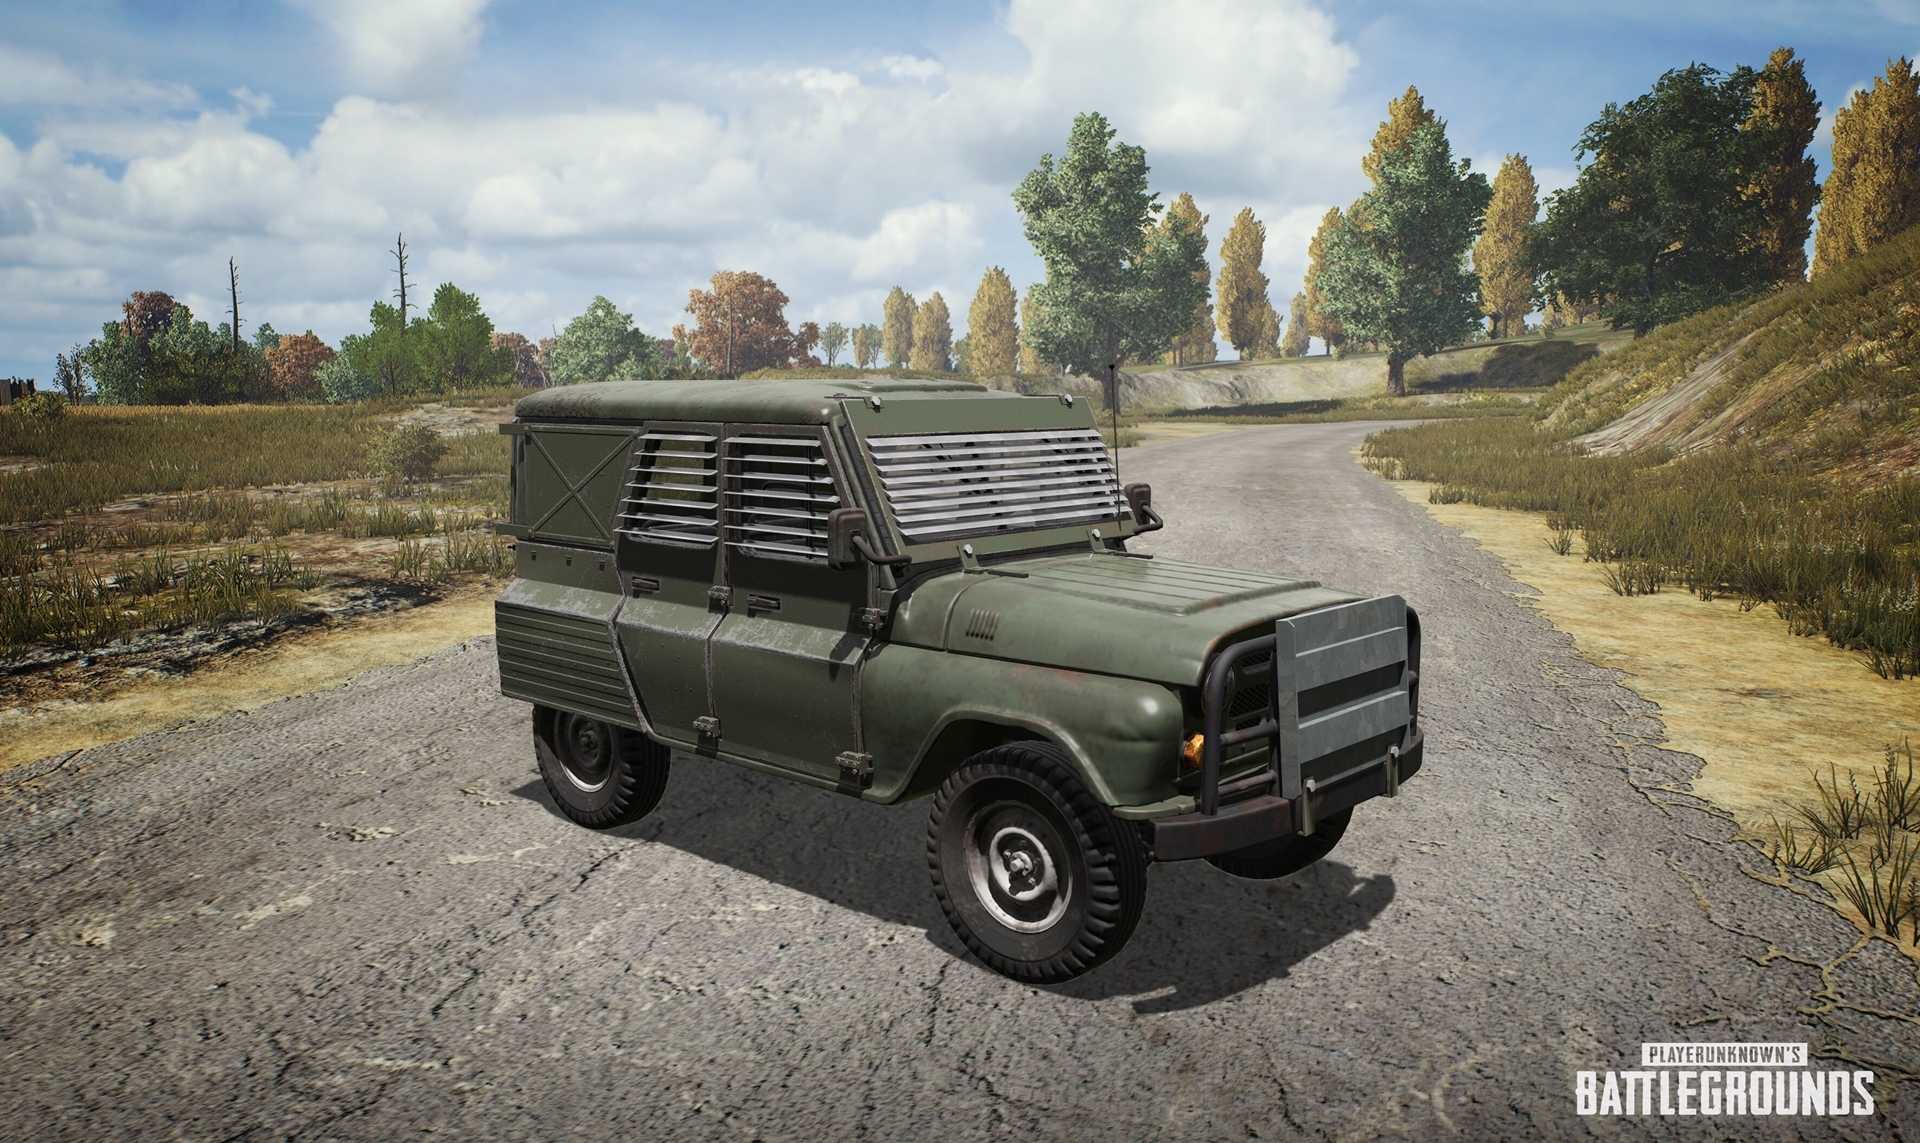 Pubg S Latest Mode Adds Armored Vehicles And Eight Person Squads